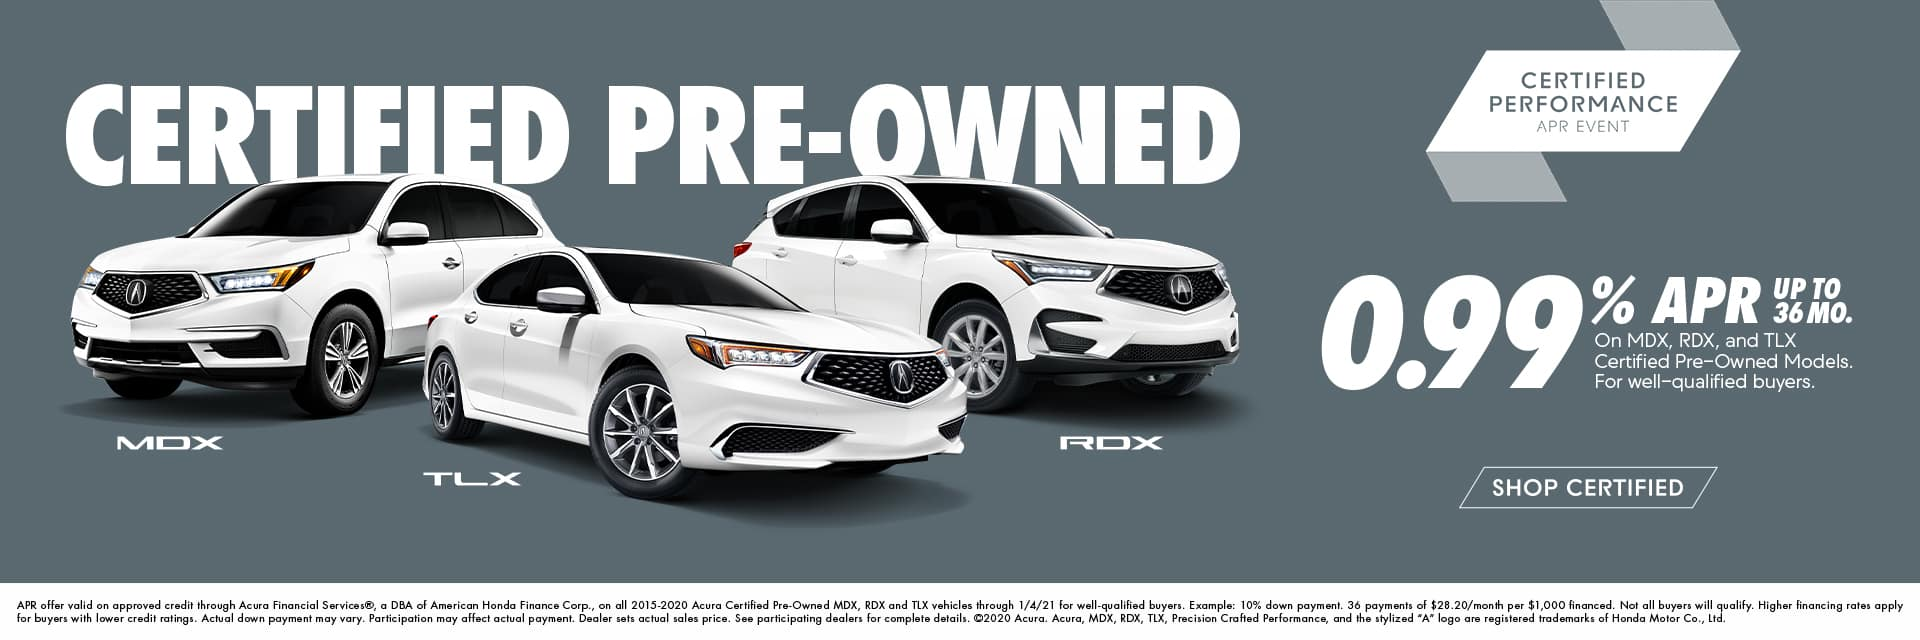 Acura Certified Pre-Owned Event Sunnyside Acura Nashua NH 03063